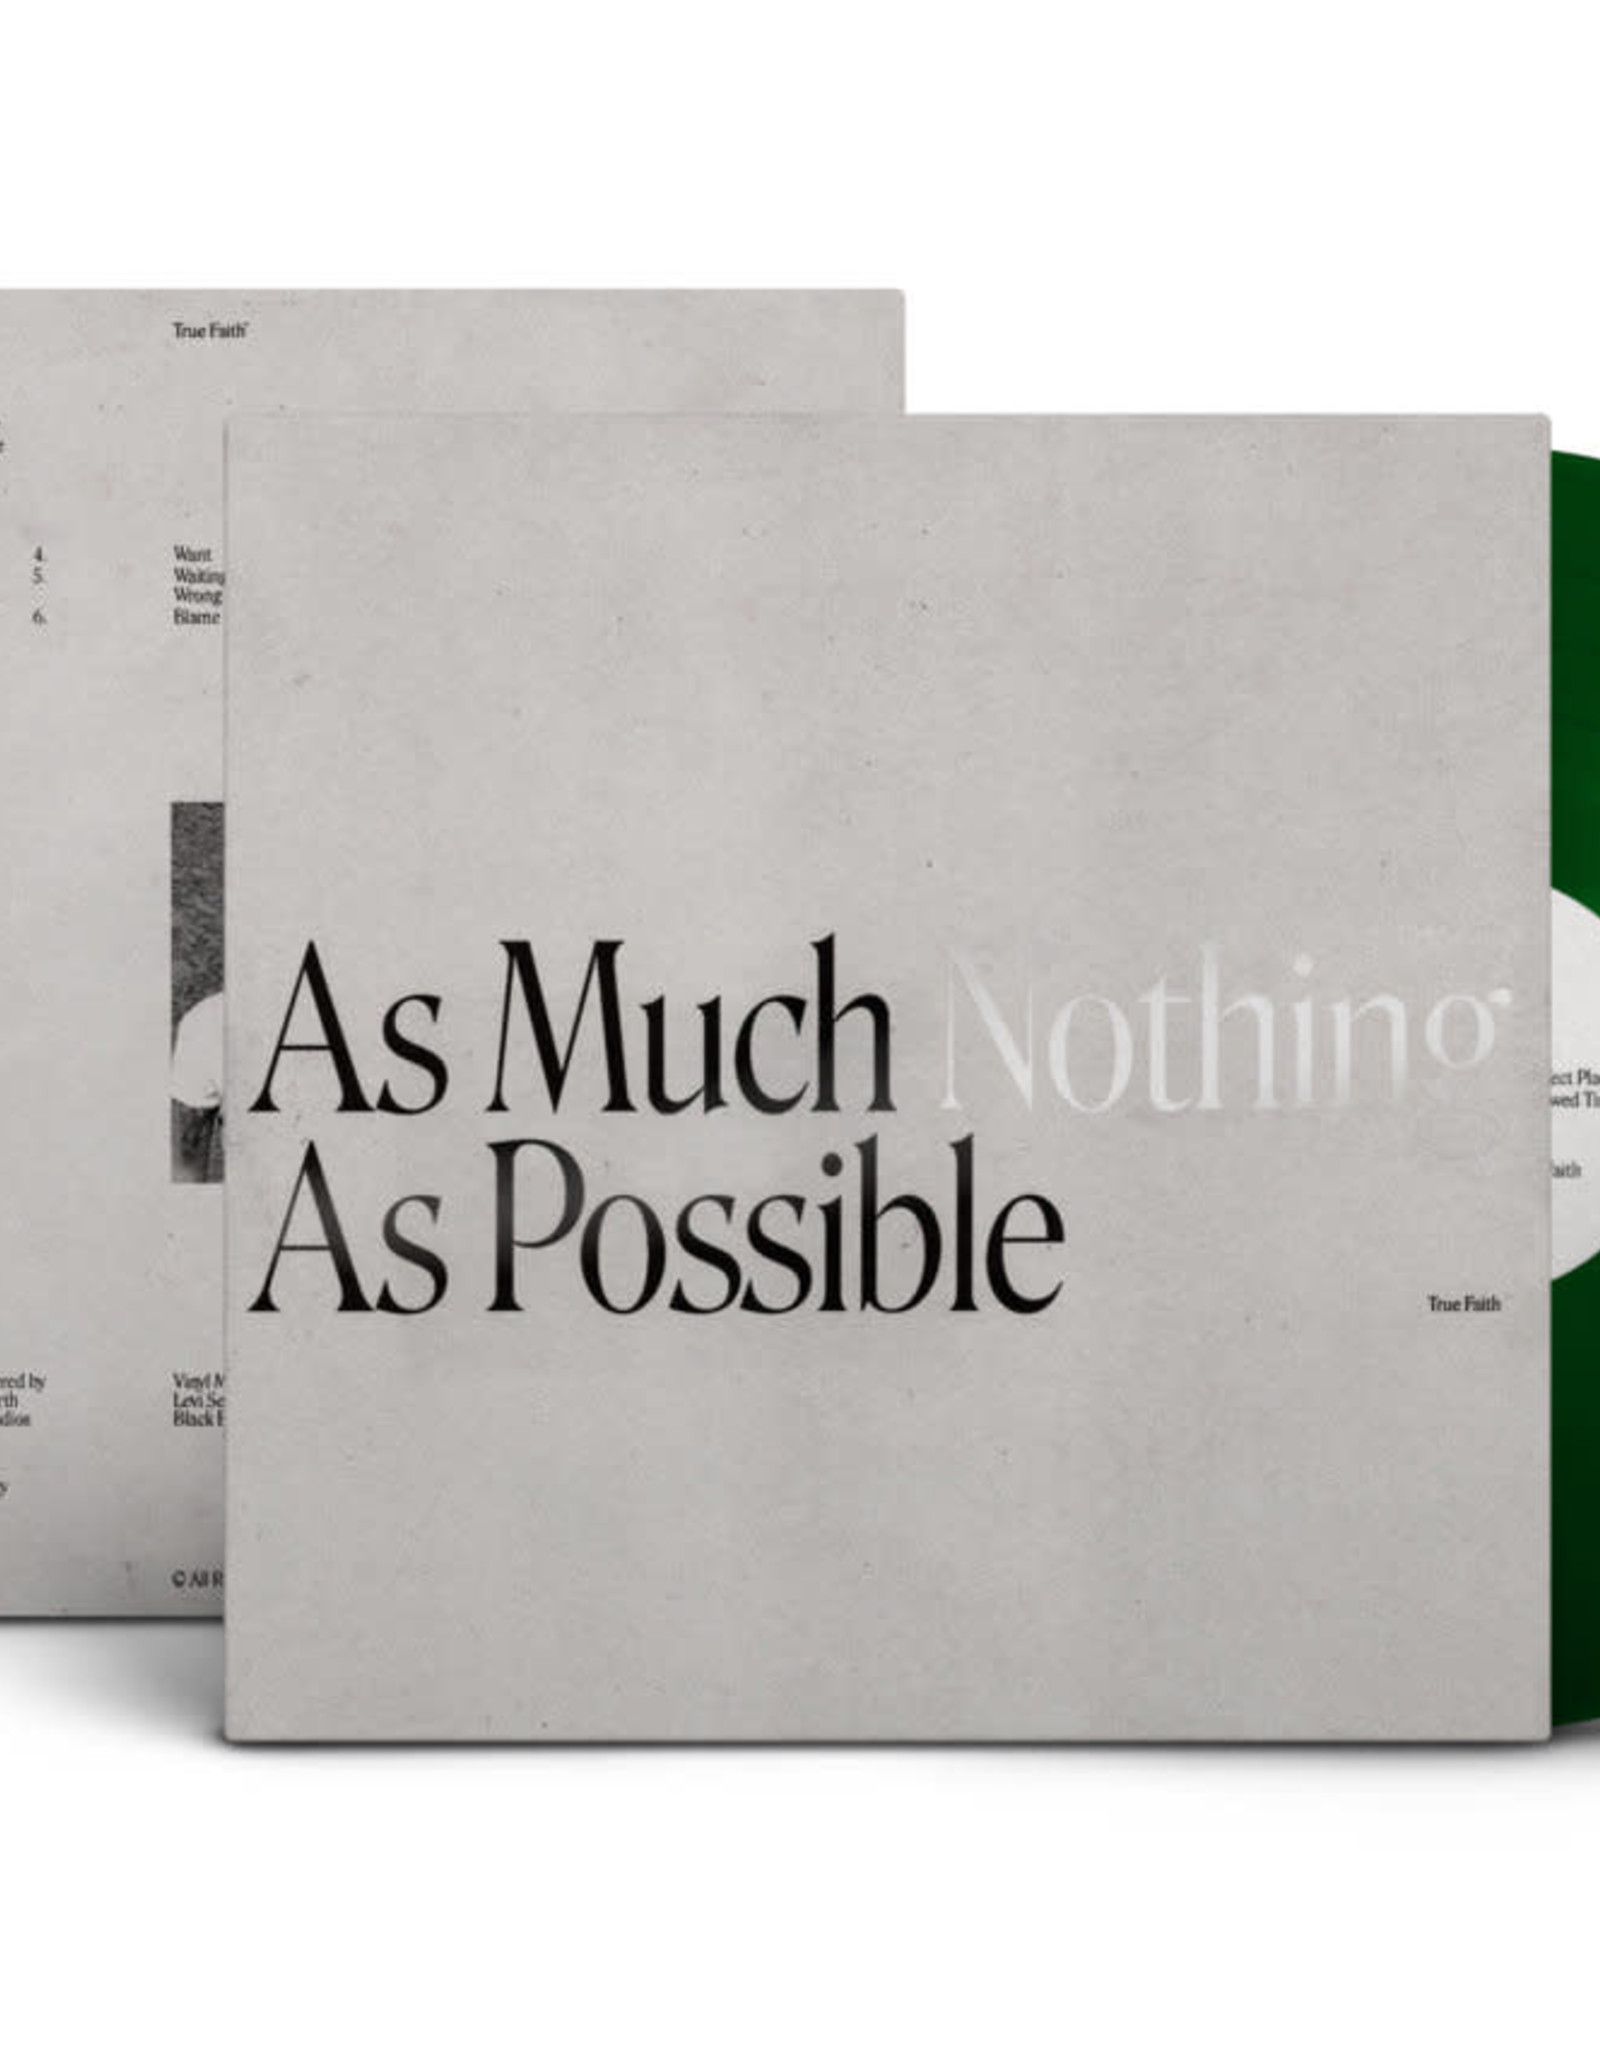 True Faith - As Much Nothing As Possible